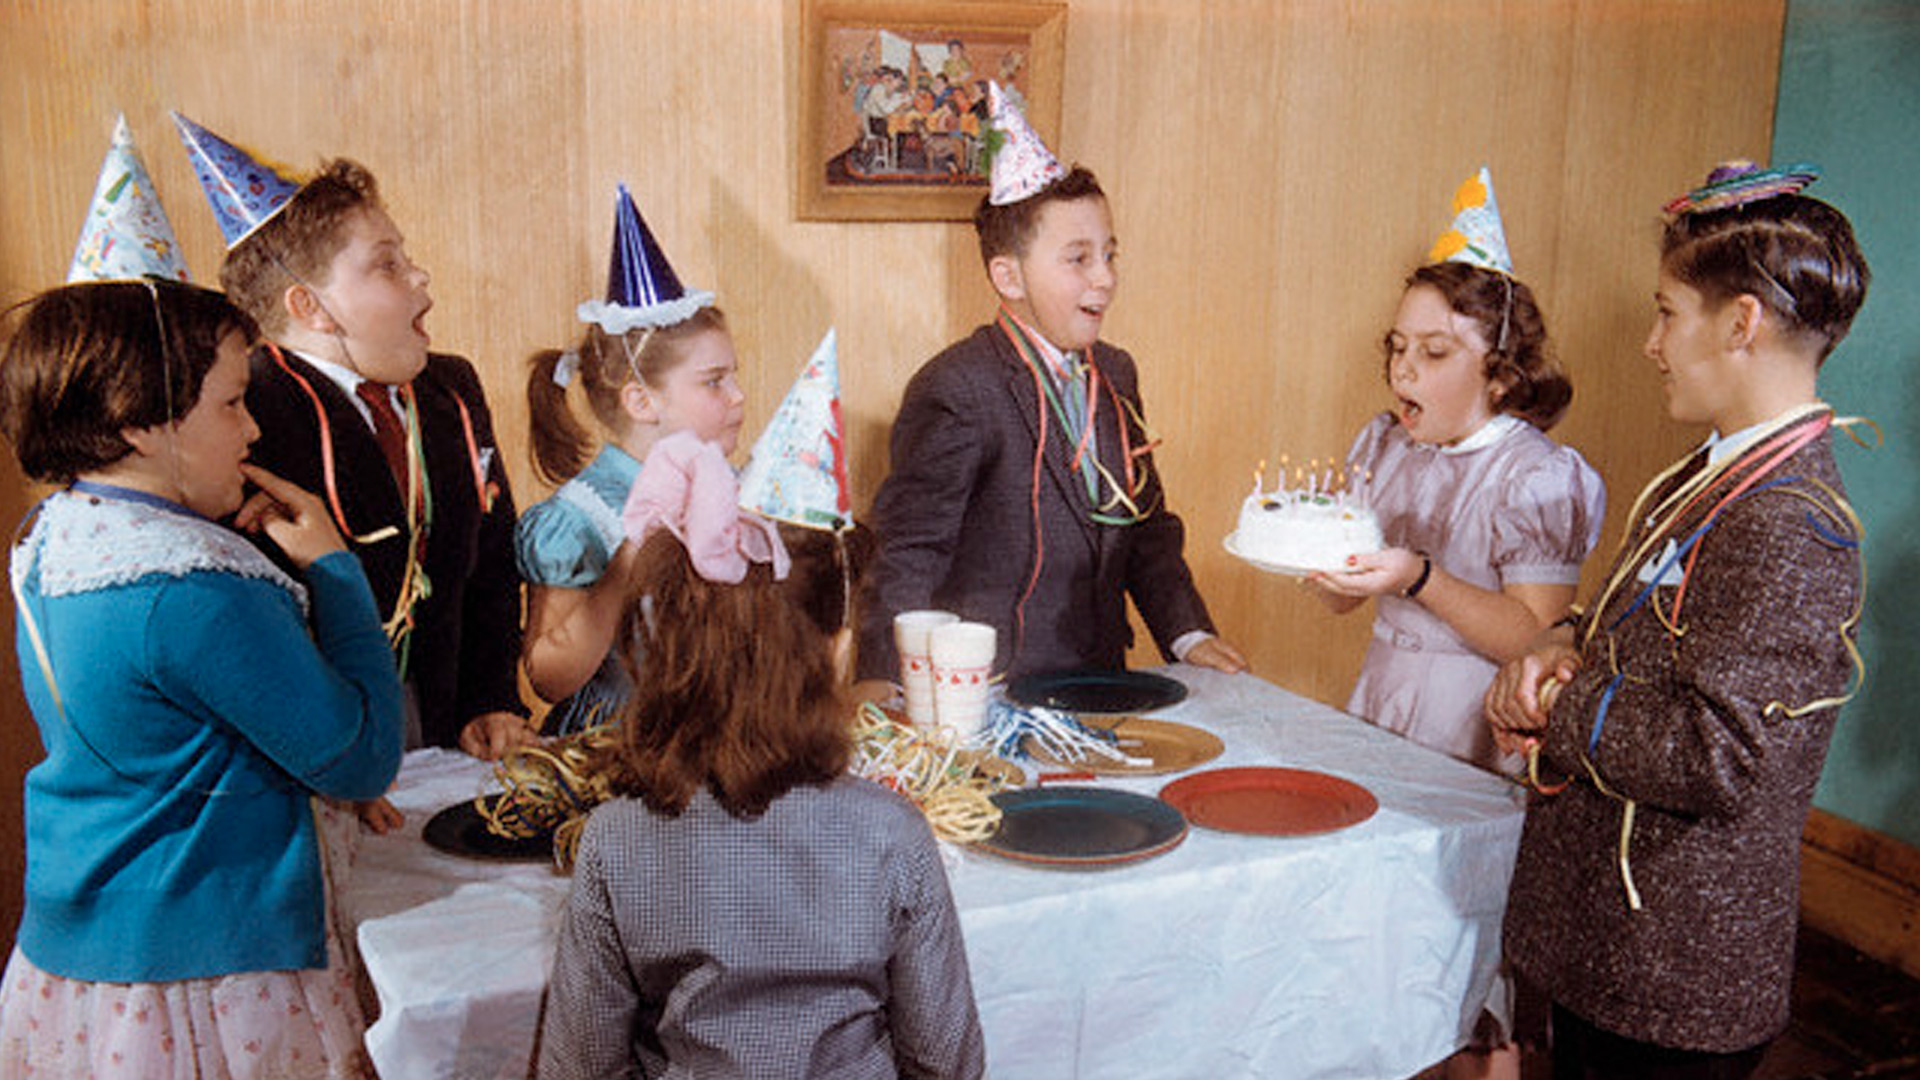 Vintage photo of kids at a birthday party